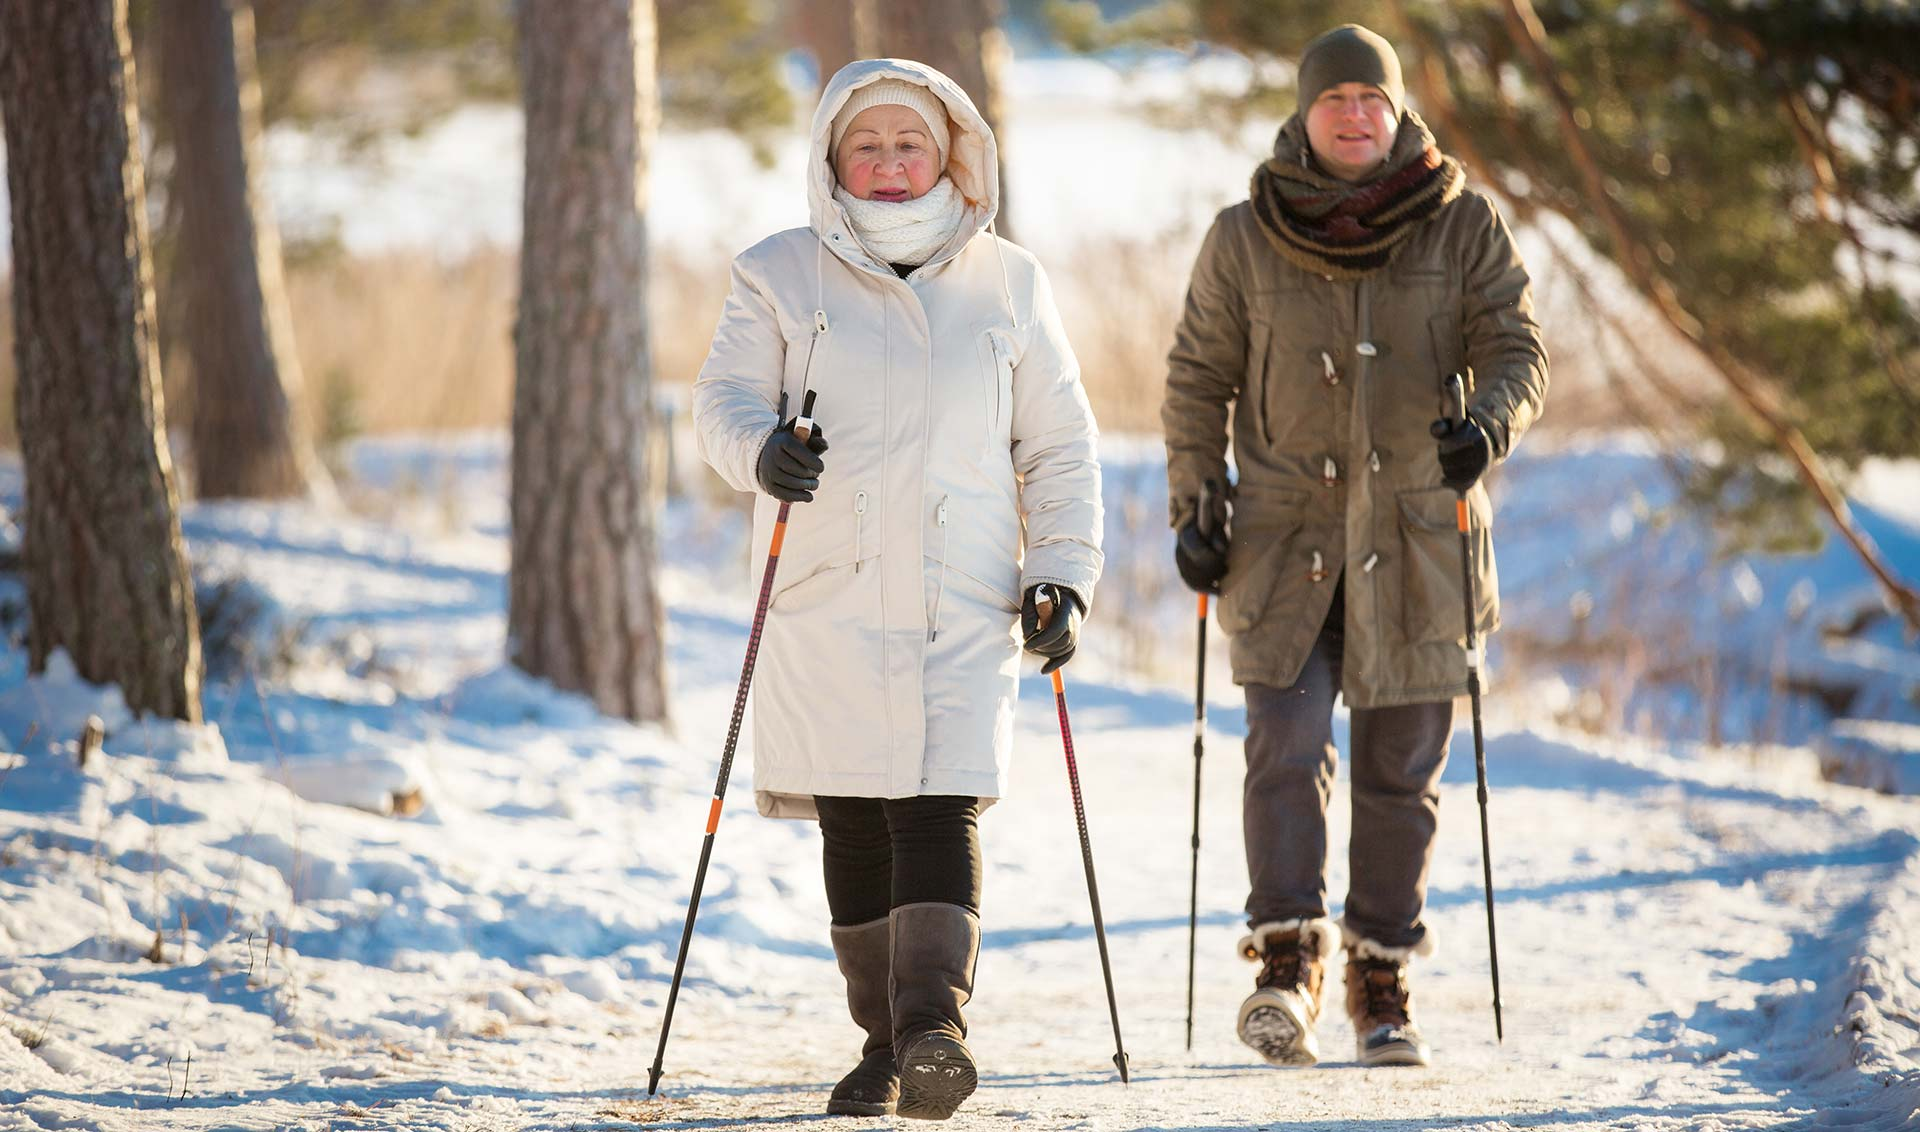 A senior couple is walking on a snowy path, it is a sunny winter day. They are using Nordic poles and are well bundled against the cold.